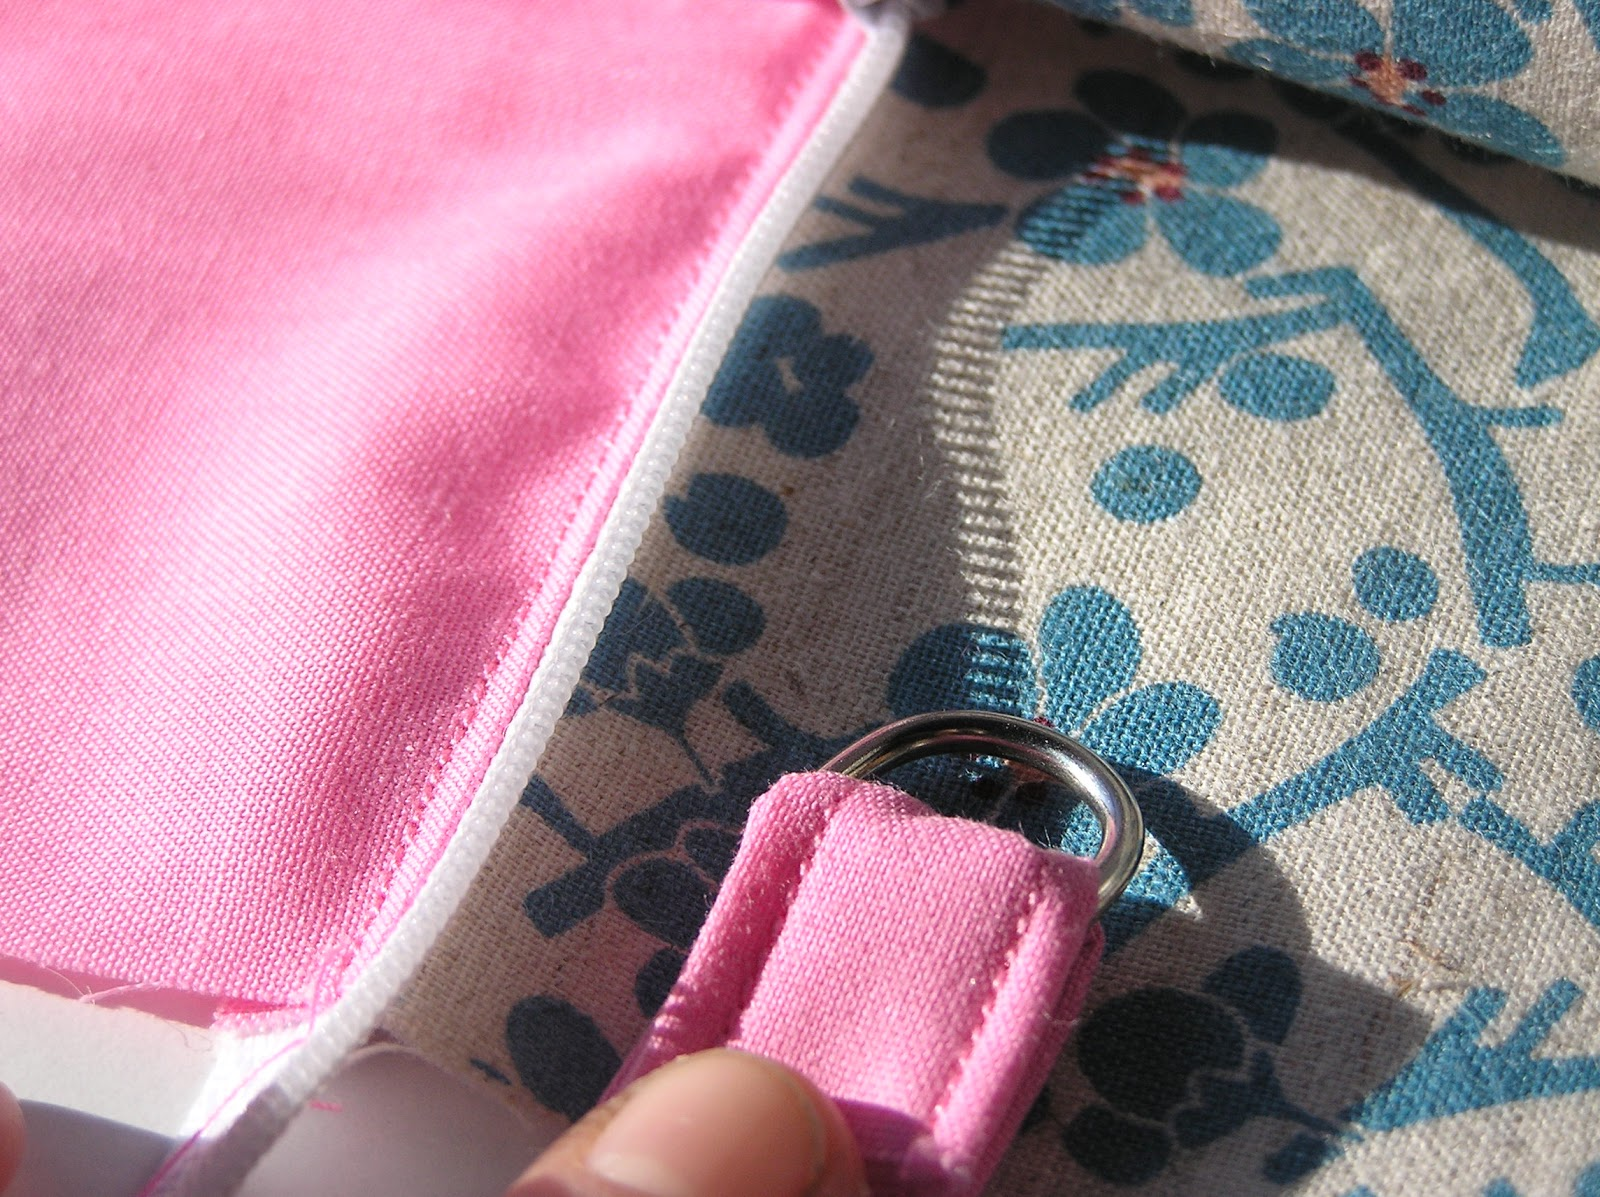 Mini Coin Purse Tutorial - step-by-step photos